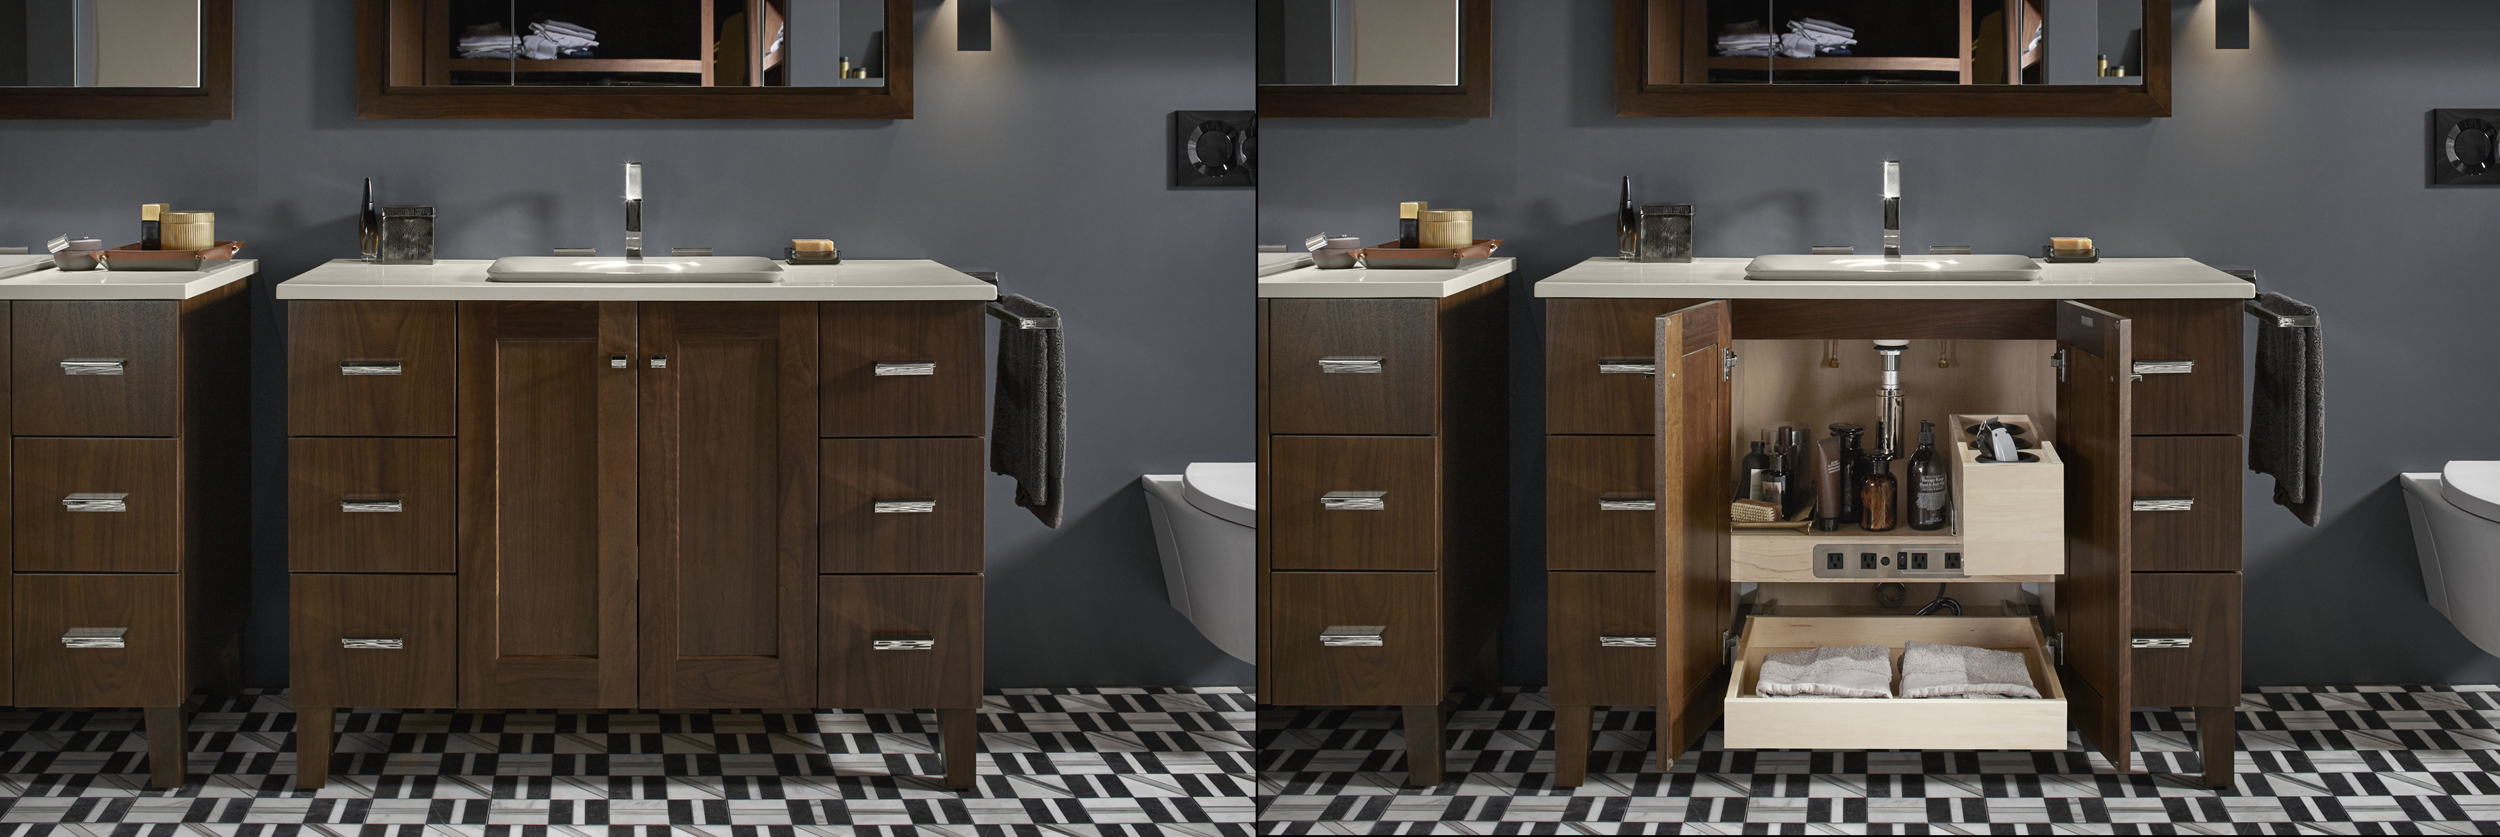 Poplin® vanity   Loure® faucet       Blending modern style with the simple Shaker-style detail of the vanities adds a touch of warmth while pullout shelves and built-in electrical plugs make using hair dryers and other essentials easy.